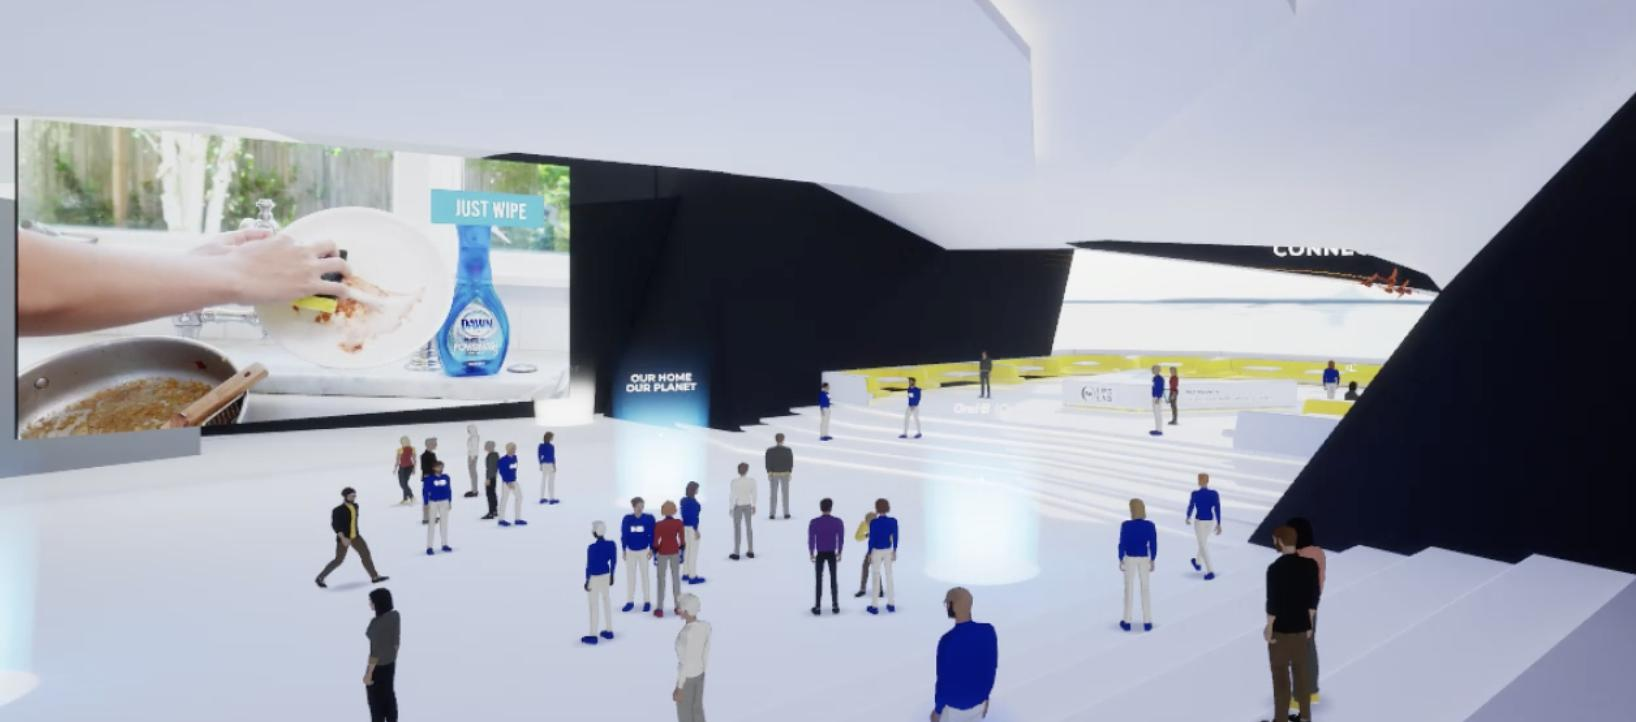 P&G's new virtual LifeLab lets attendees create avatars inside of a game-like experience.